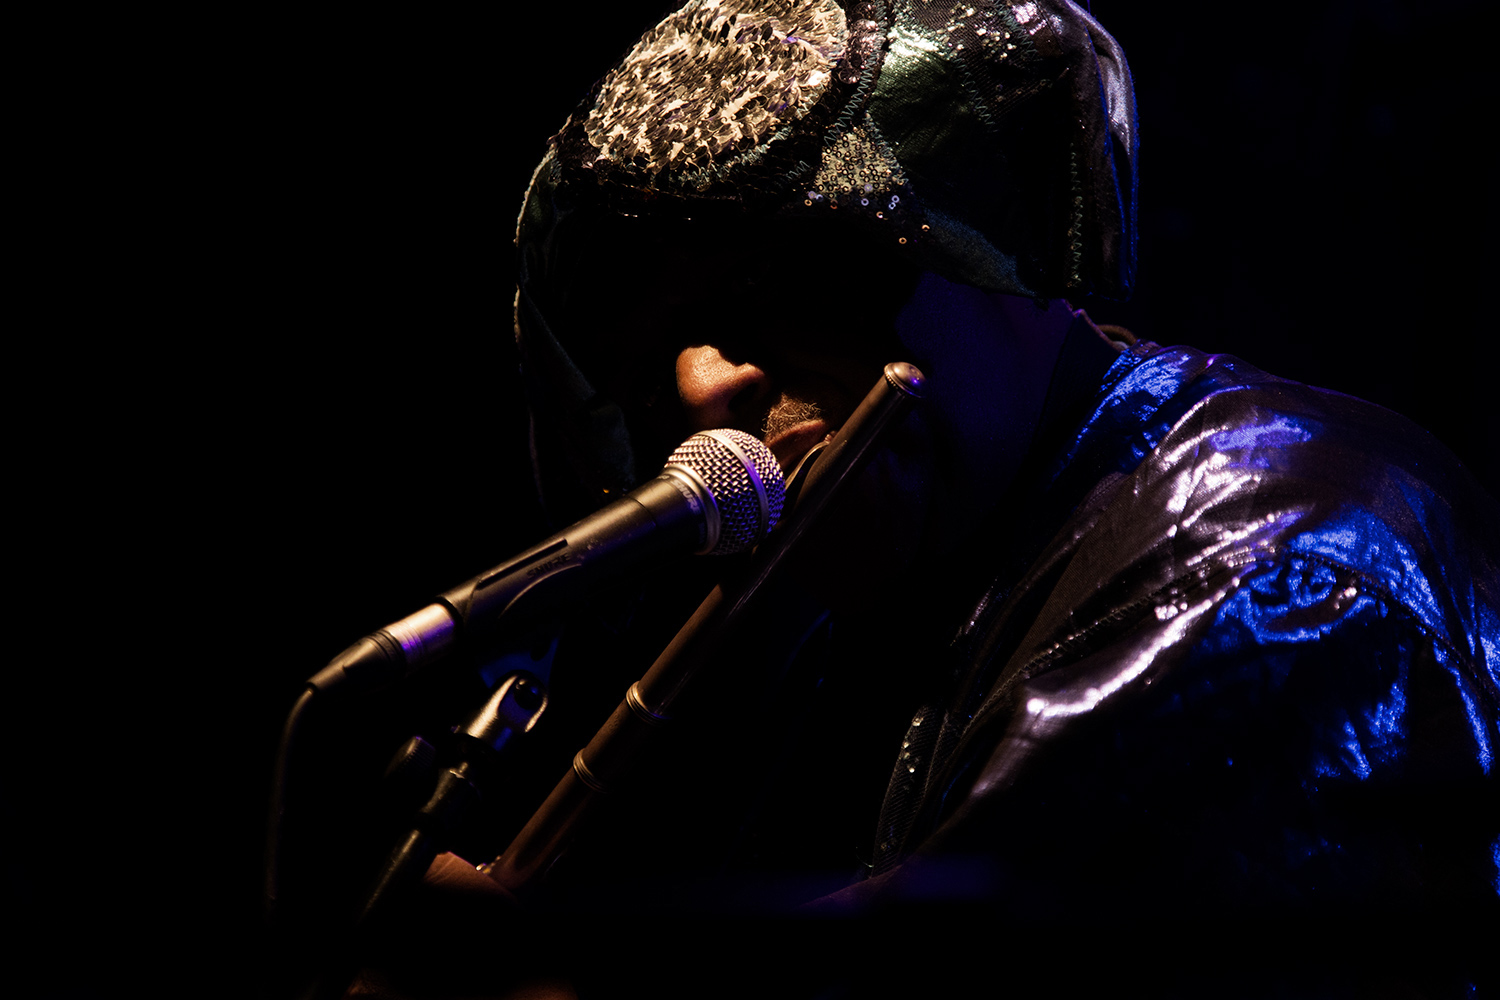 Sun Ra Arkestra directed by Marshall Allen by Laurent Orseau - Concert - Les Ateliers Claus - Brussels, Belgium #31